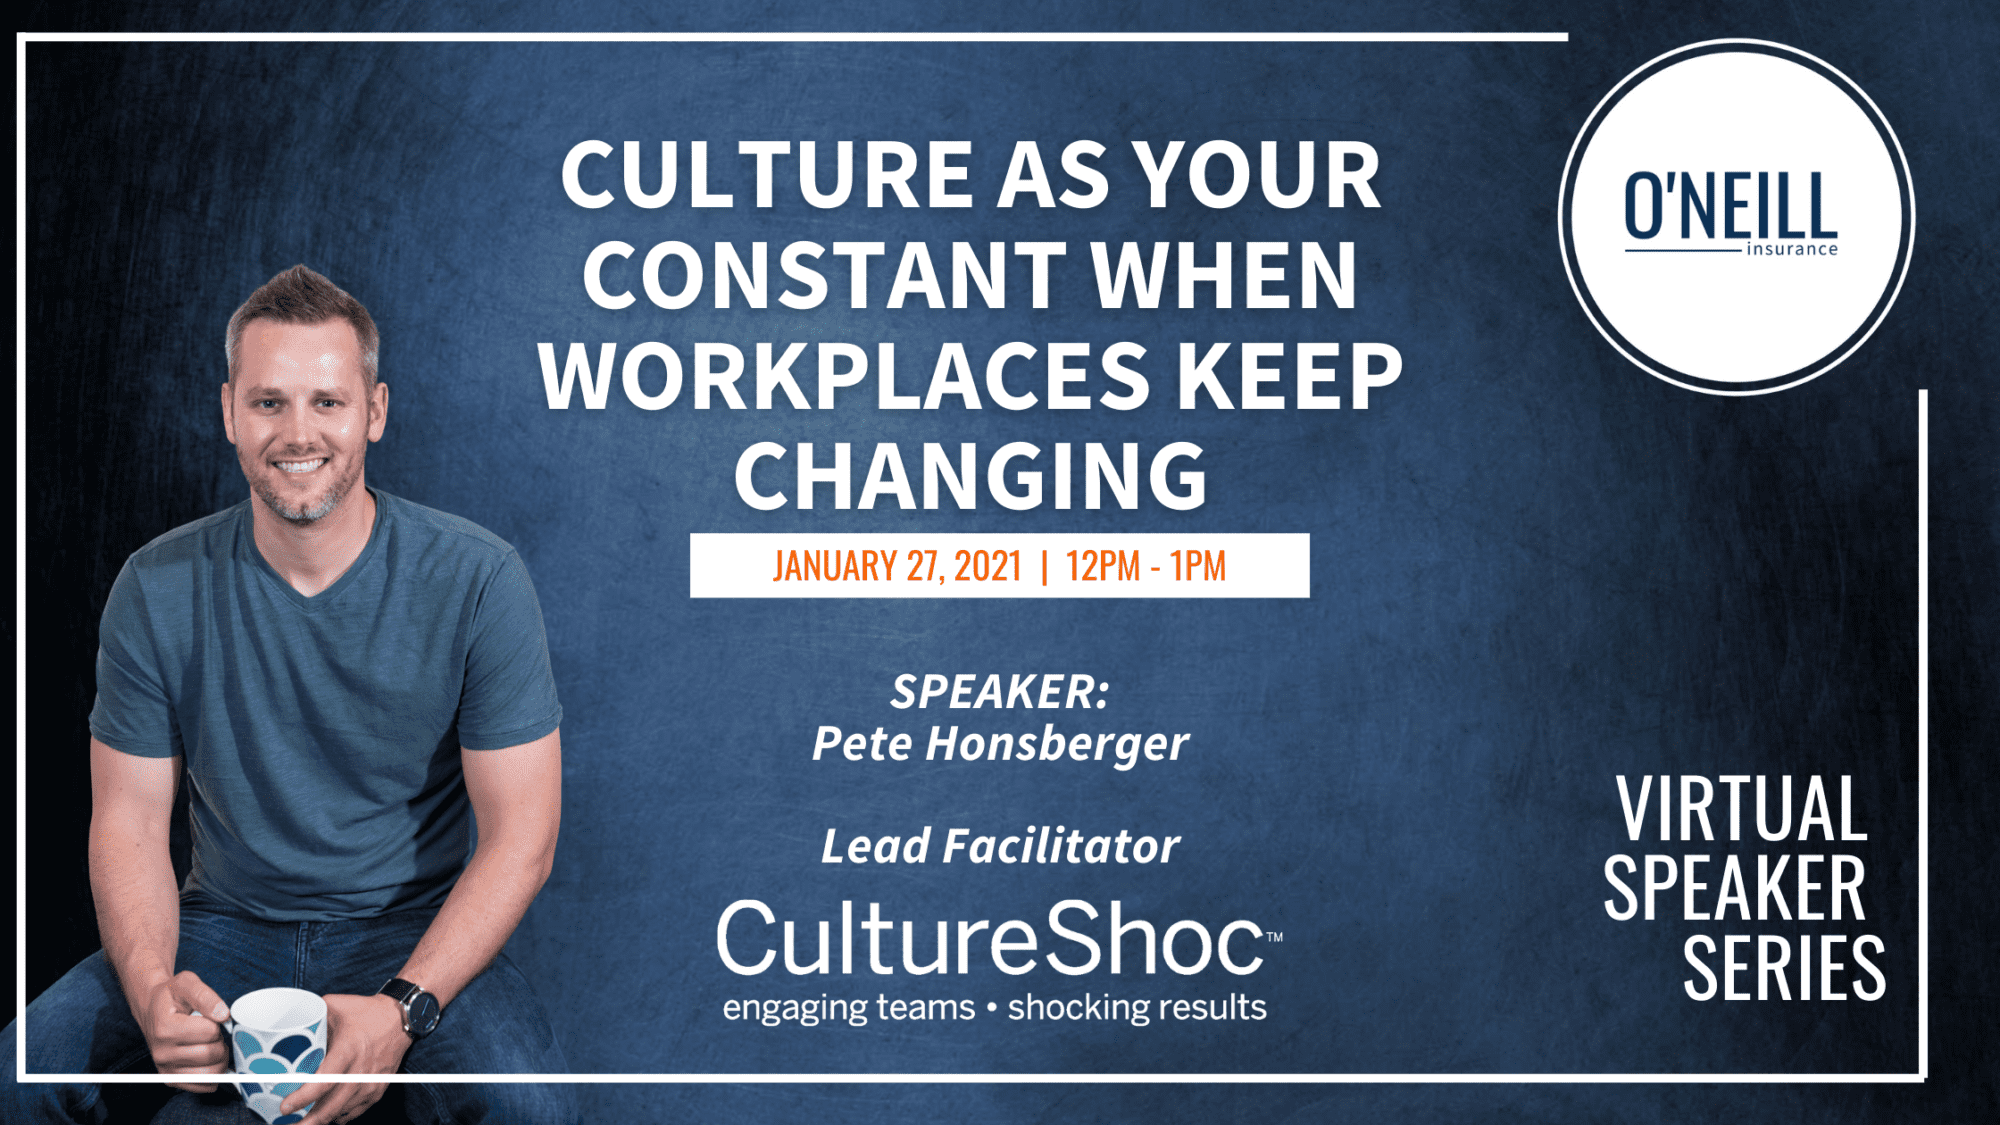 Culture as Your Constant When Workplaces Keep Changing